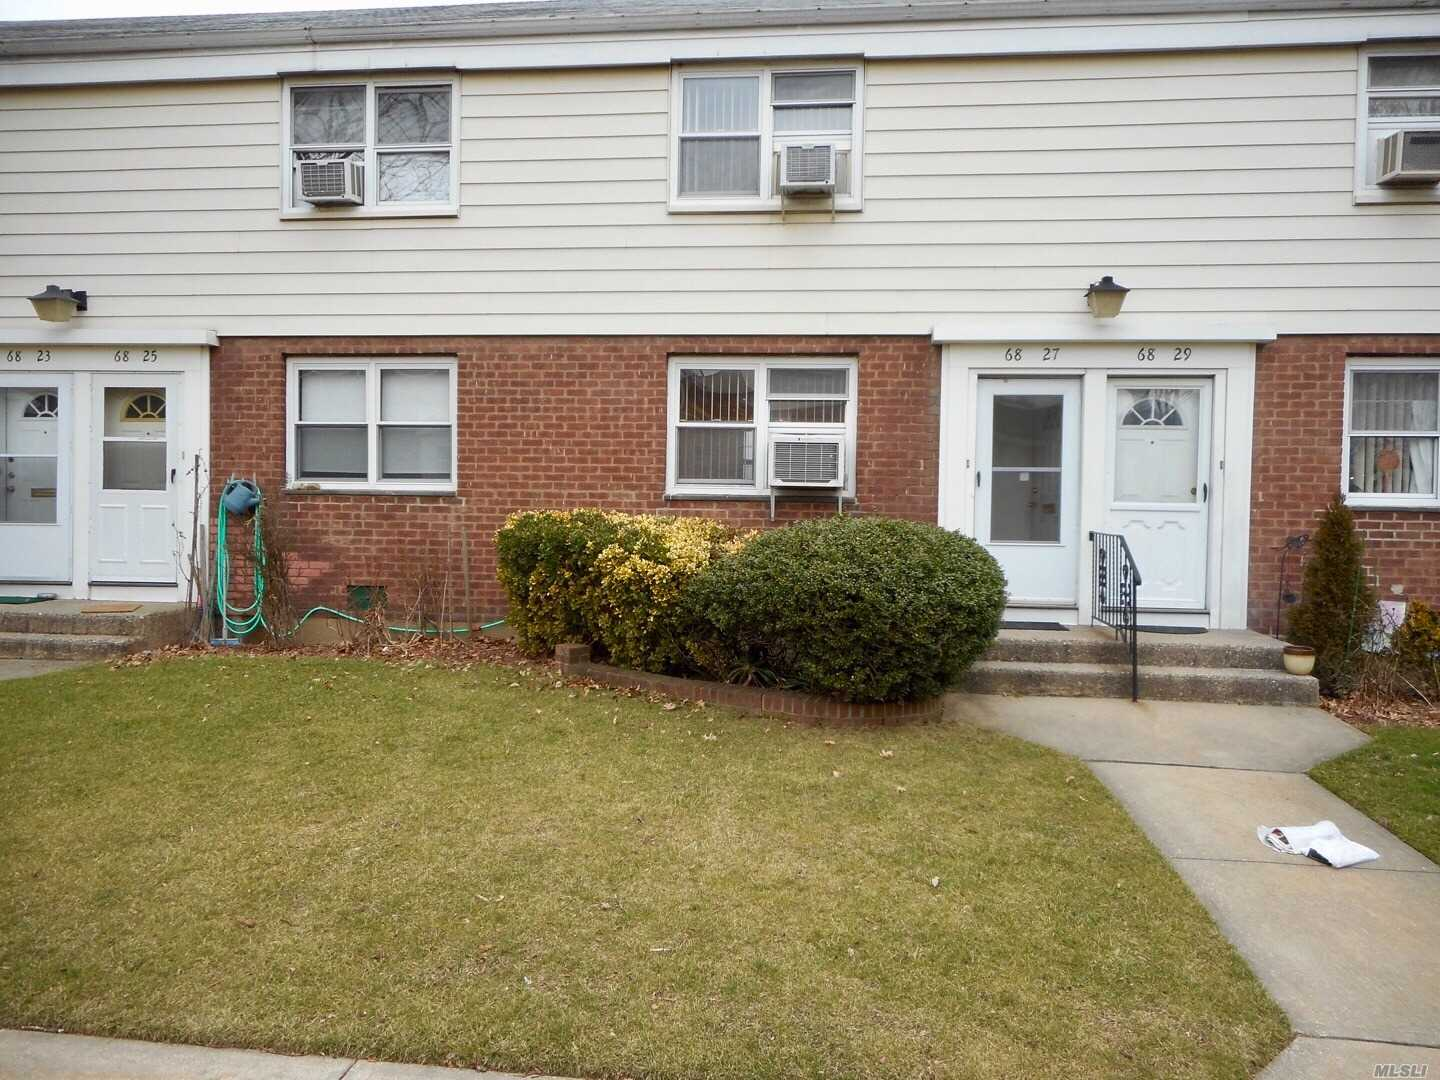 New Listing*****Beautiful Two Bedrooms Duplex Coop In Bayside. Inside Gorgeous Courtyard. New Hardwood Floor. Private Backyard And Attic ! Very Low Maintenance At $625 And Parking! Washer And Dryer Allow In Unit And 1/2 Bath Allow On First Floor! Flip Tax 10% Pay By Seller. Zone For Blue Ribbon Schools Ps46 And Ms74 !!!!